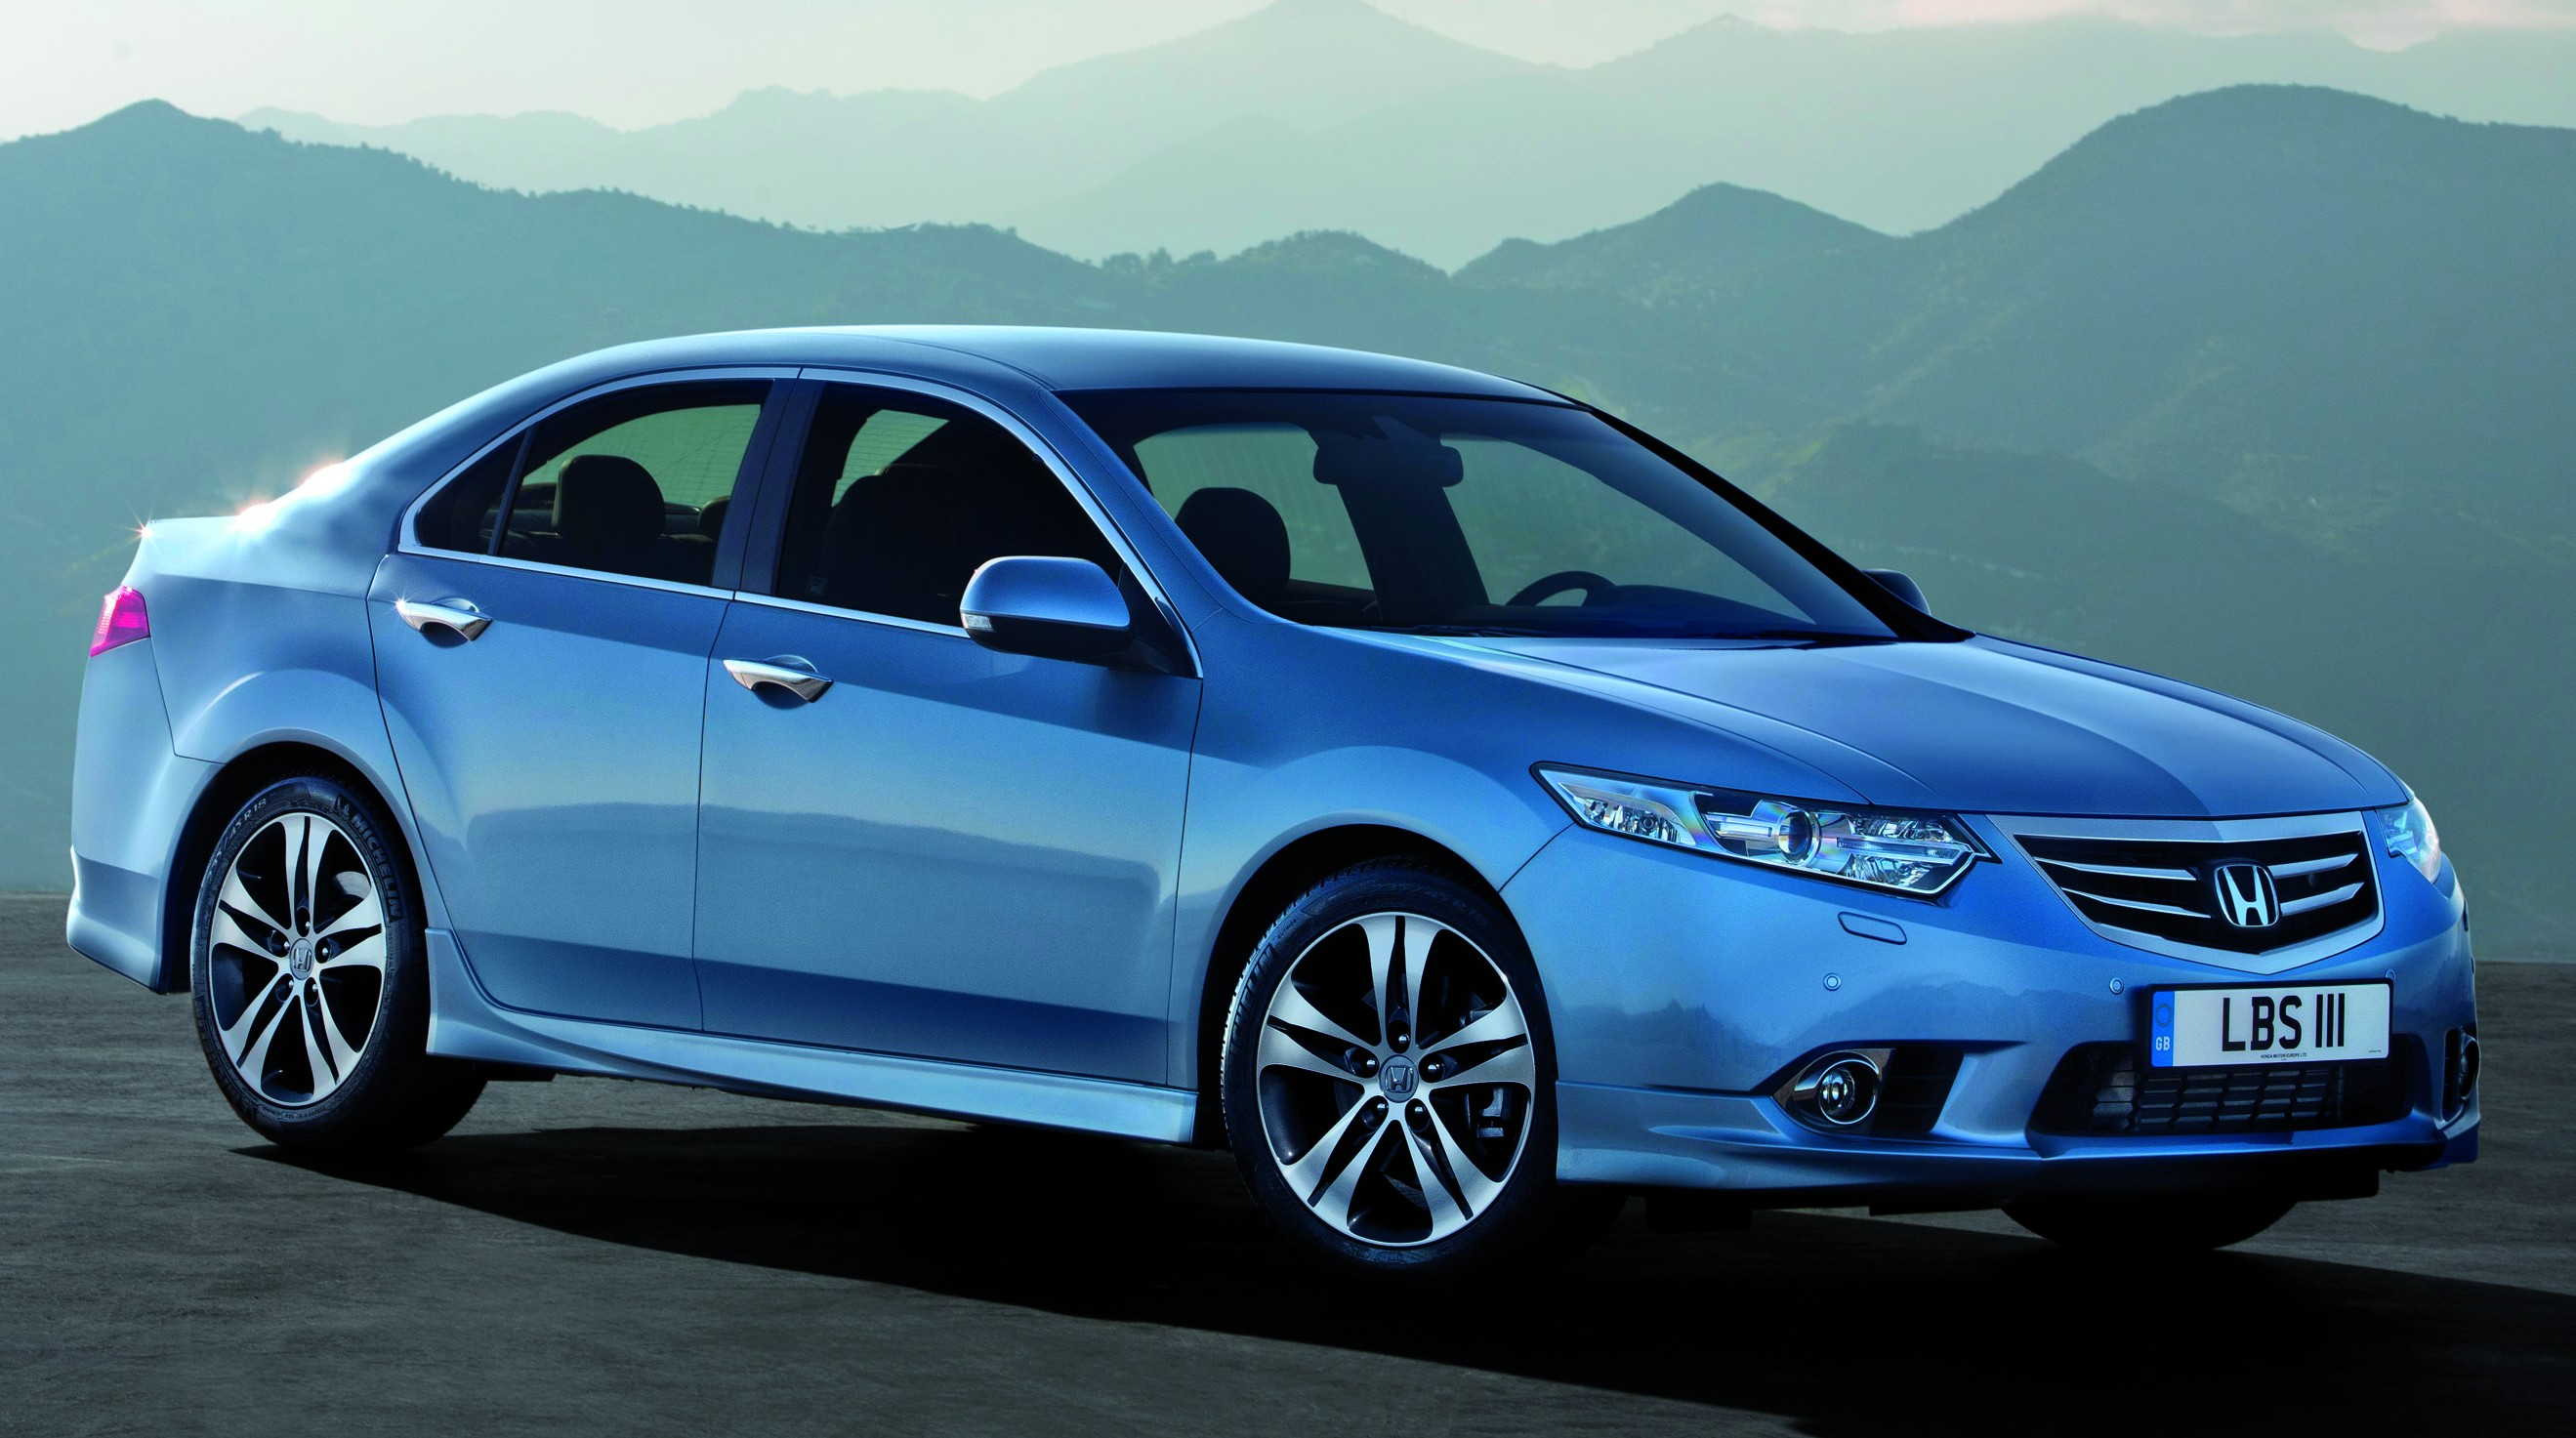 coupe honda wallpaper background accord download images hd